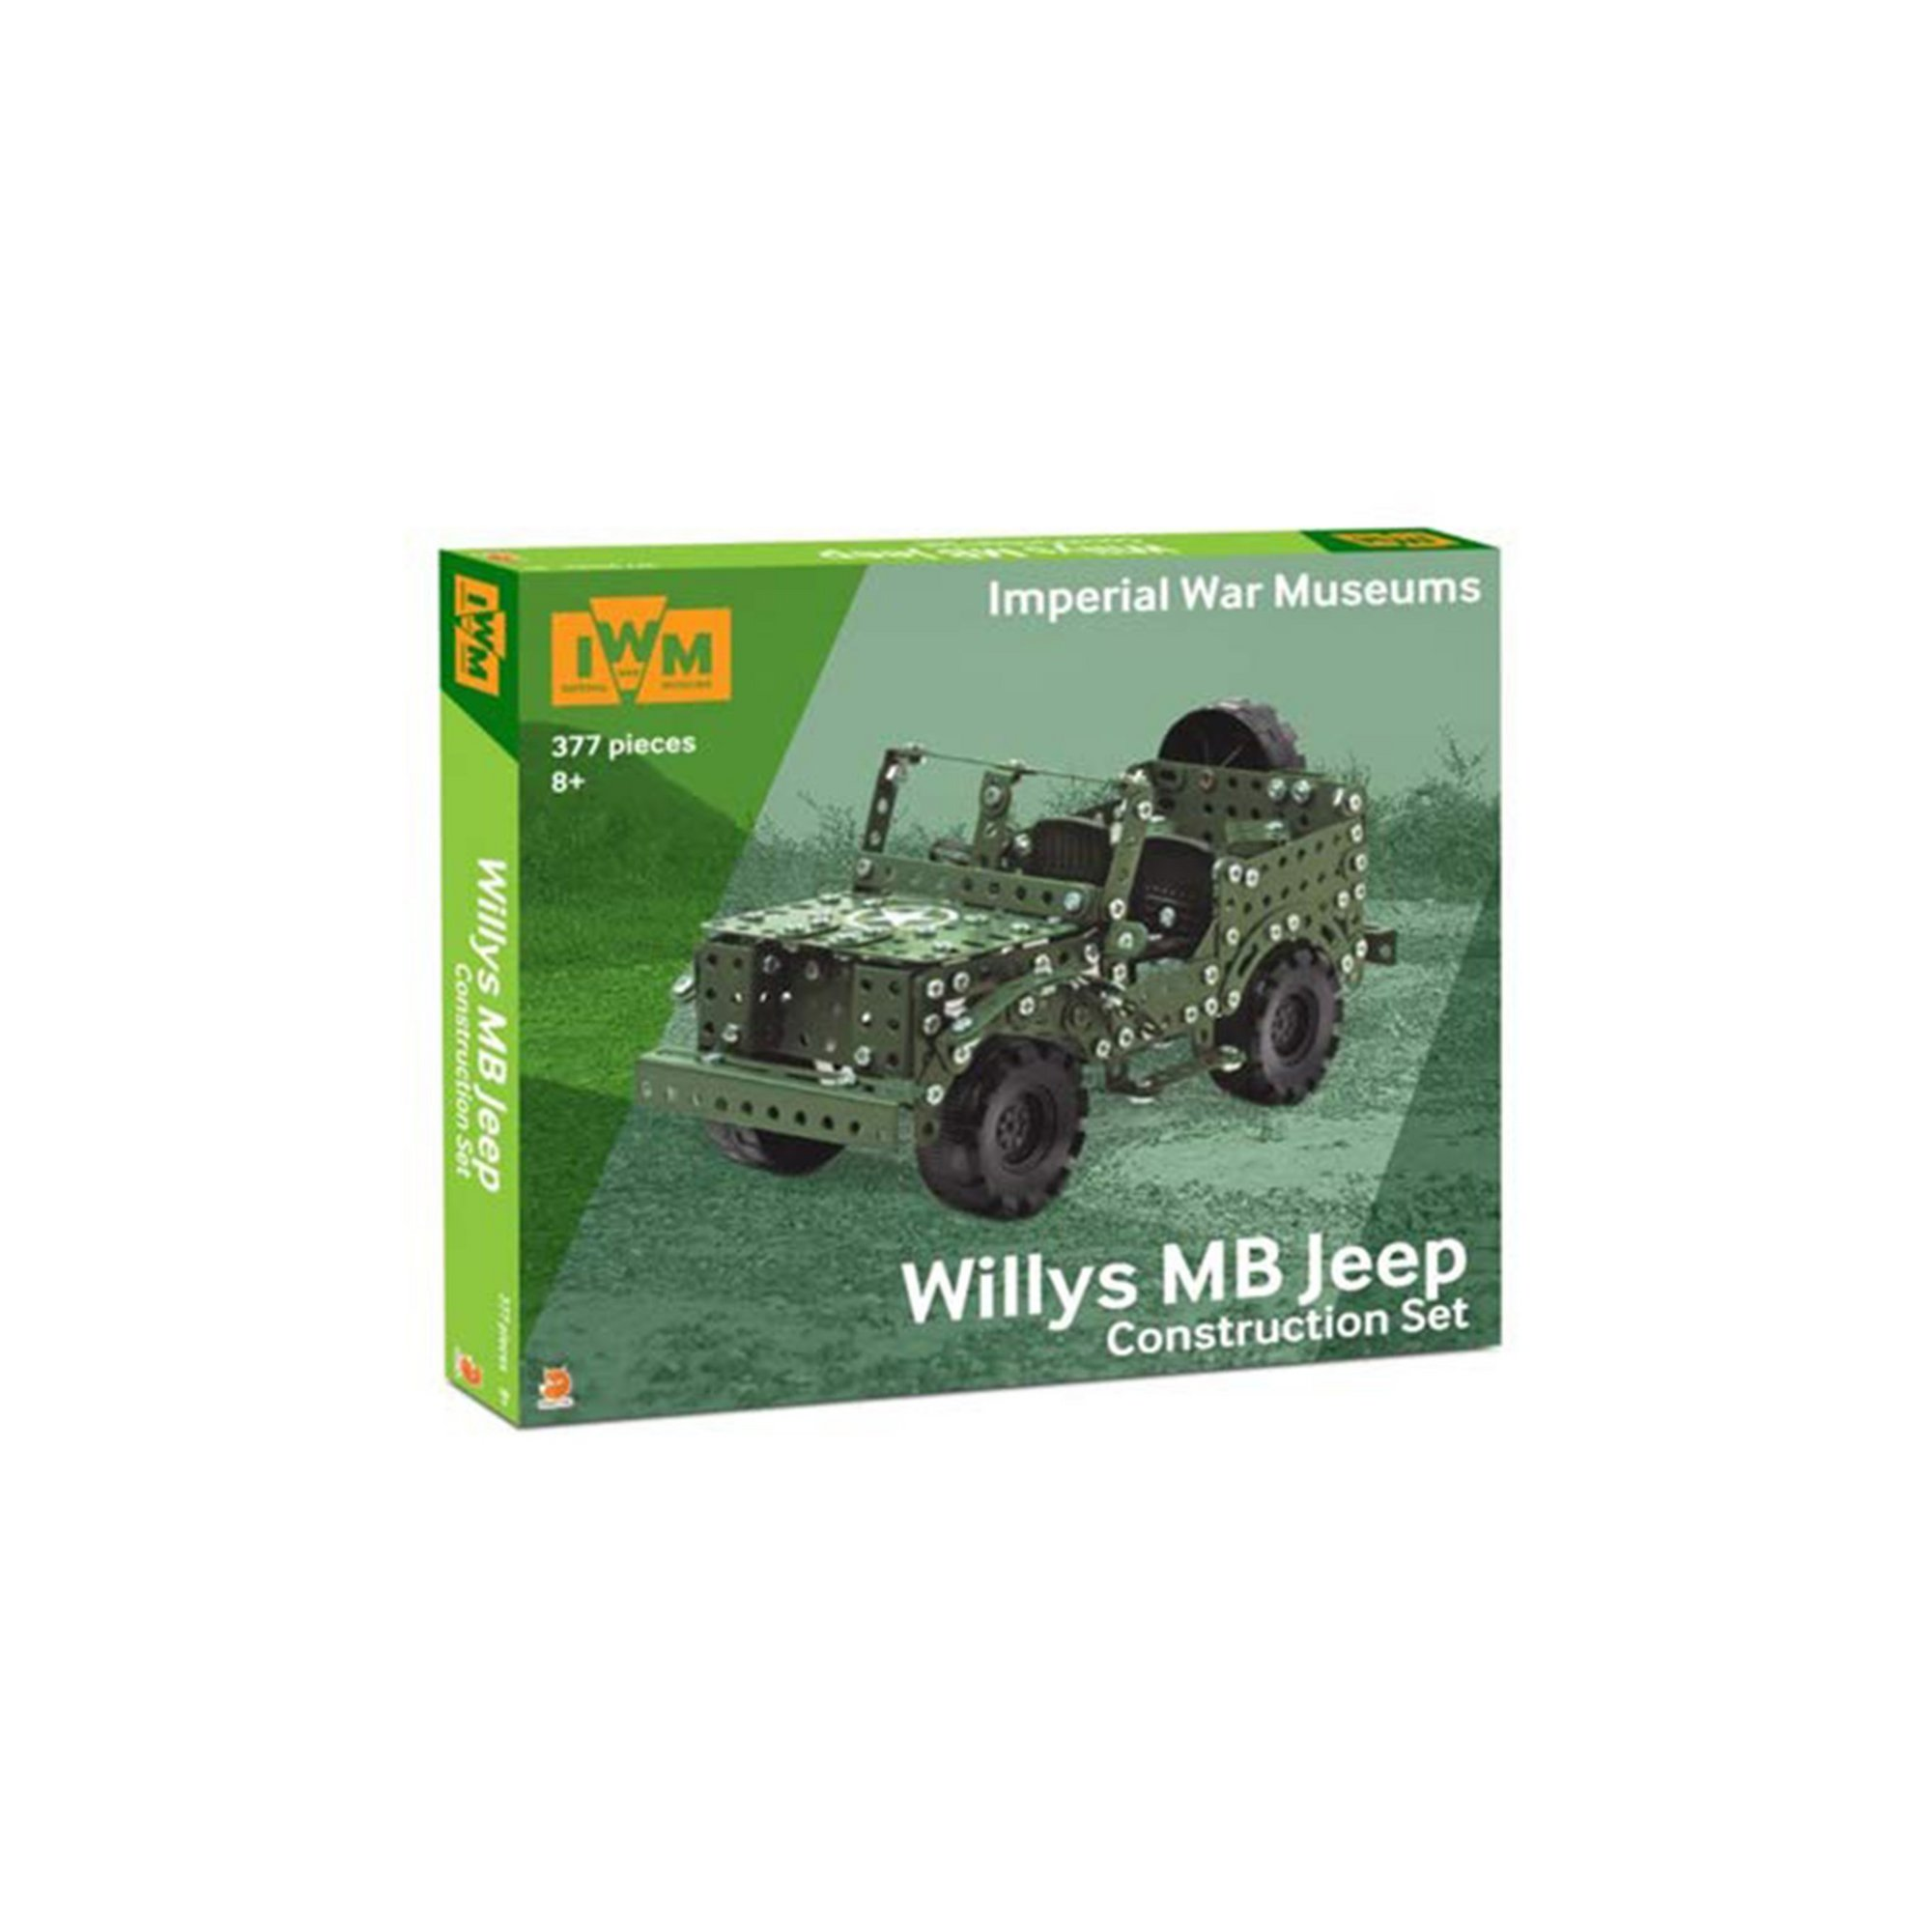 Image of Willys MB Jeep Imperial War Museums Construction Set